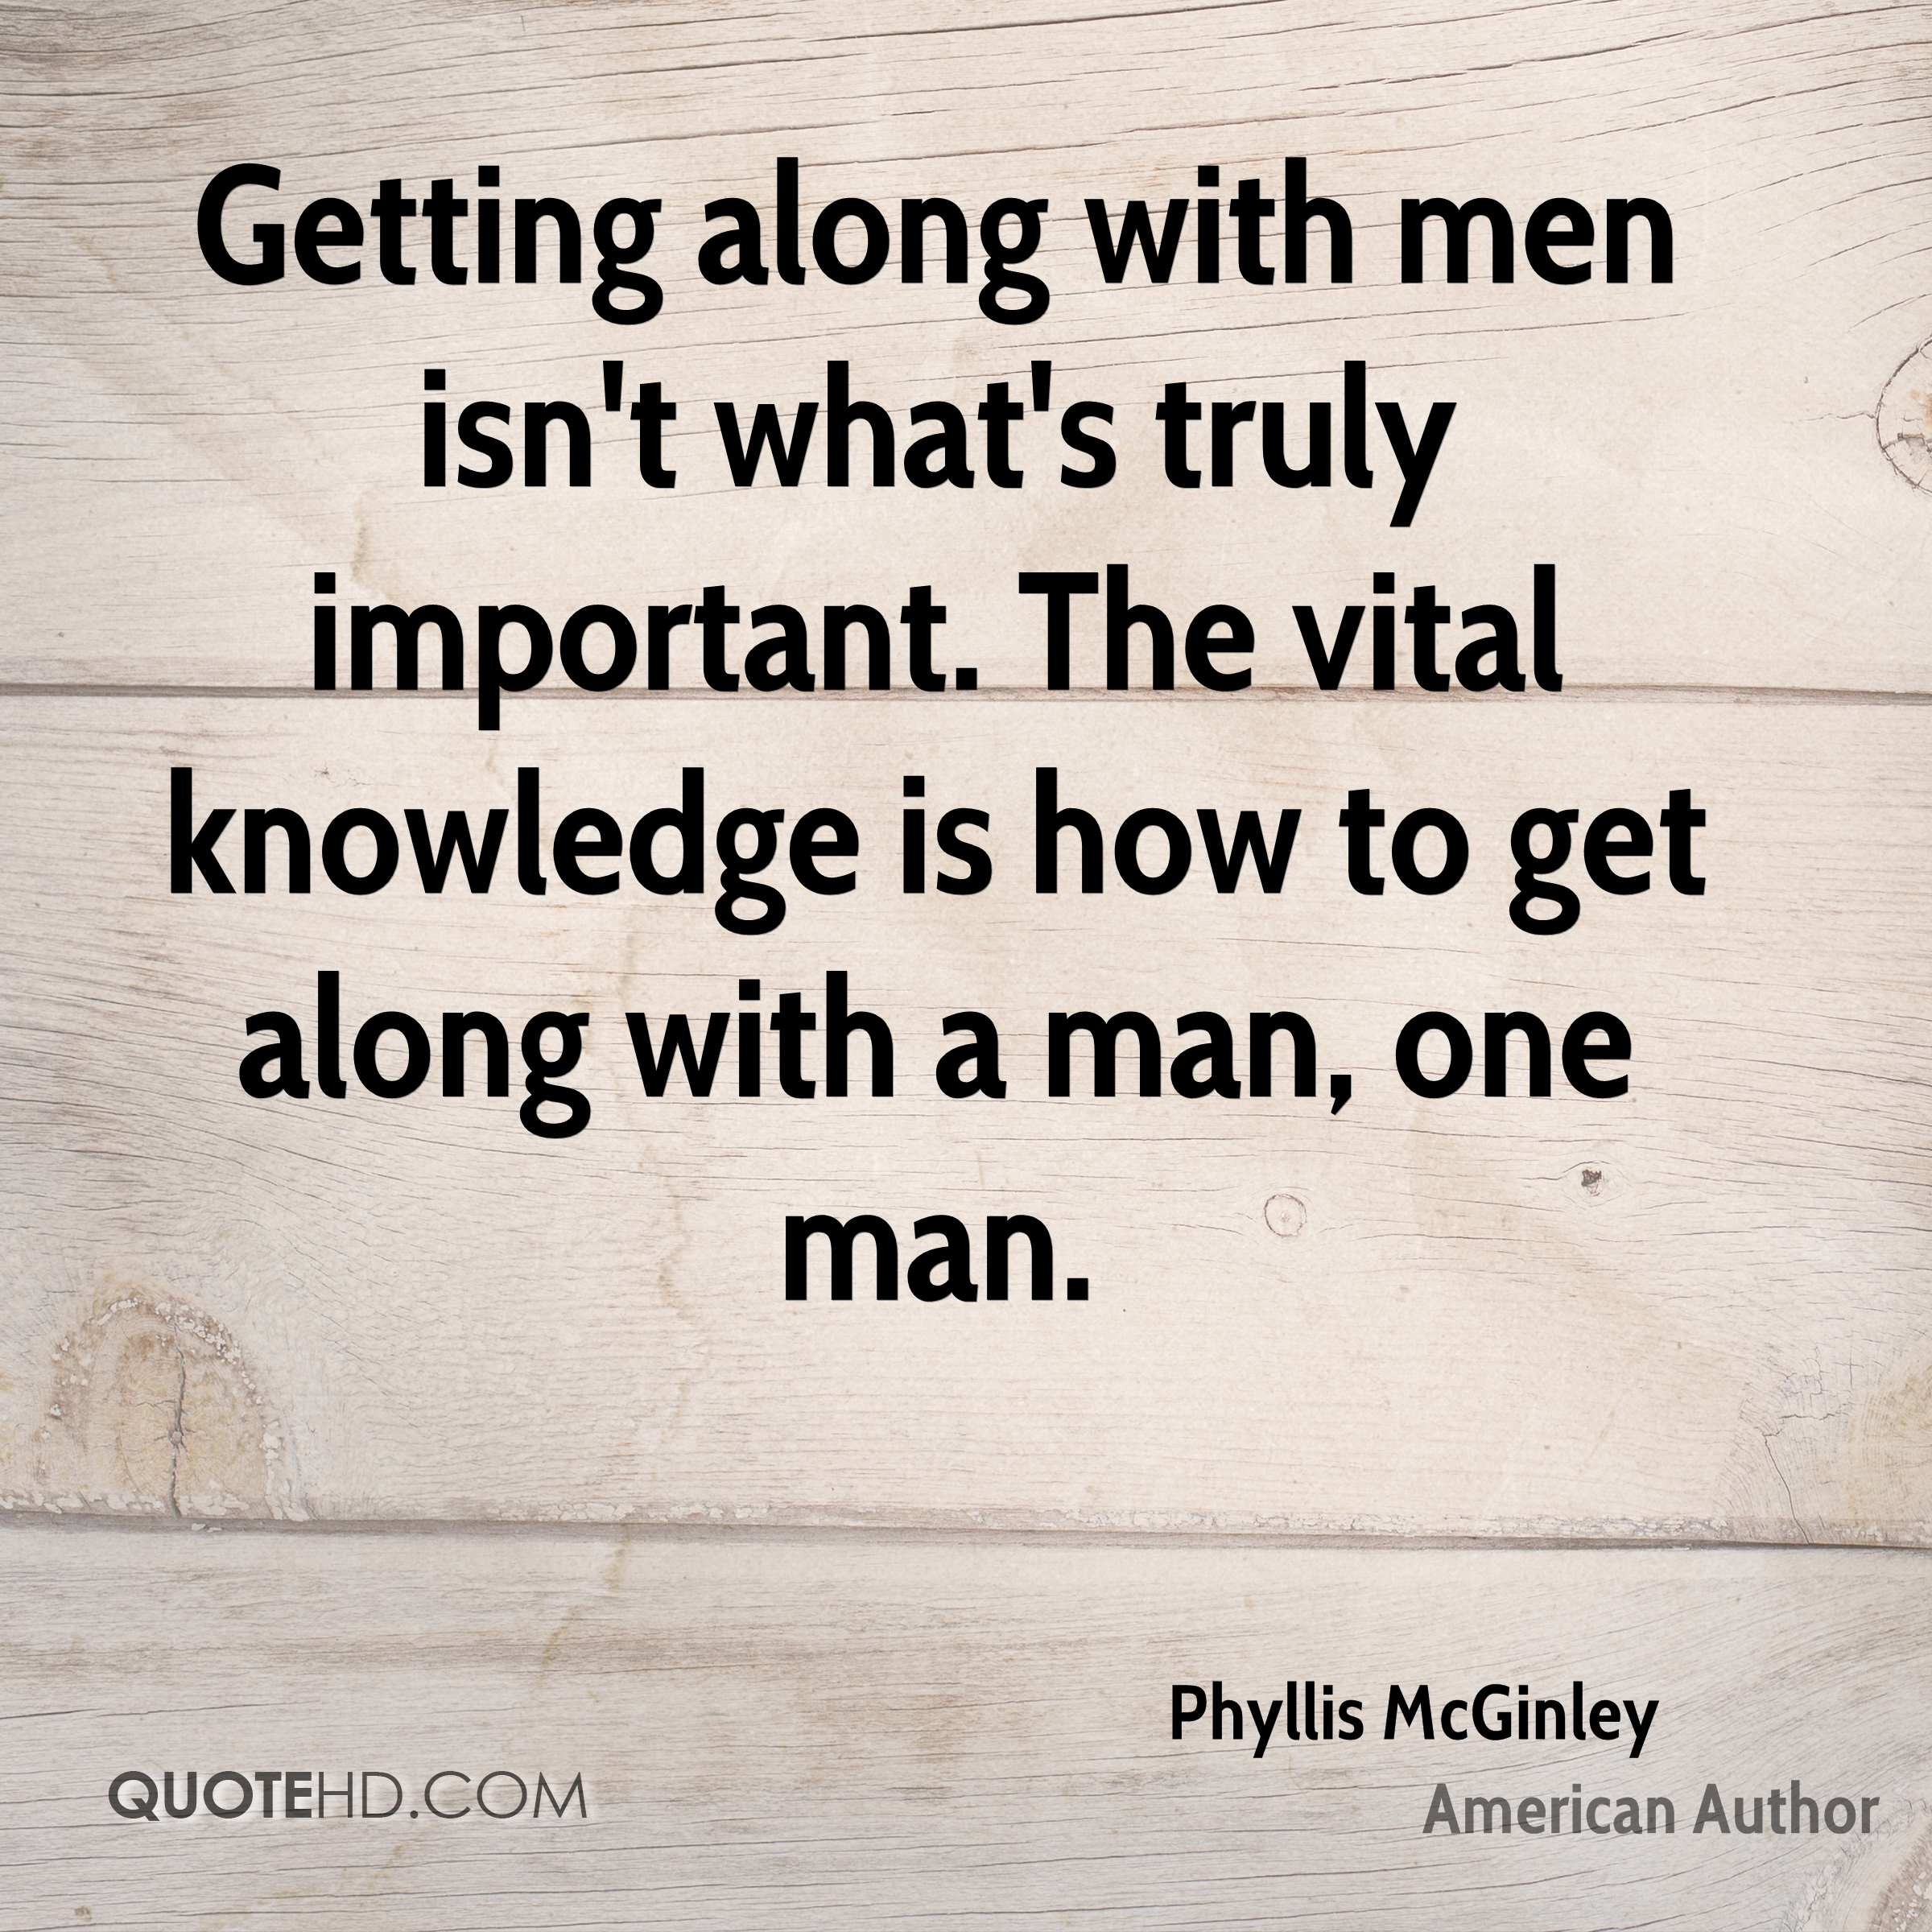 Getting along with men isn't what's truly important. The vital knowledge is how to get along with a man, one man.